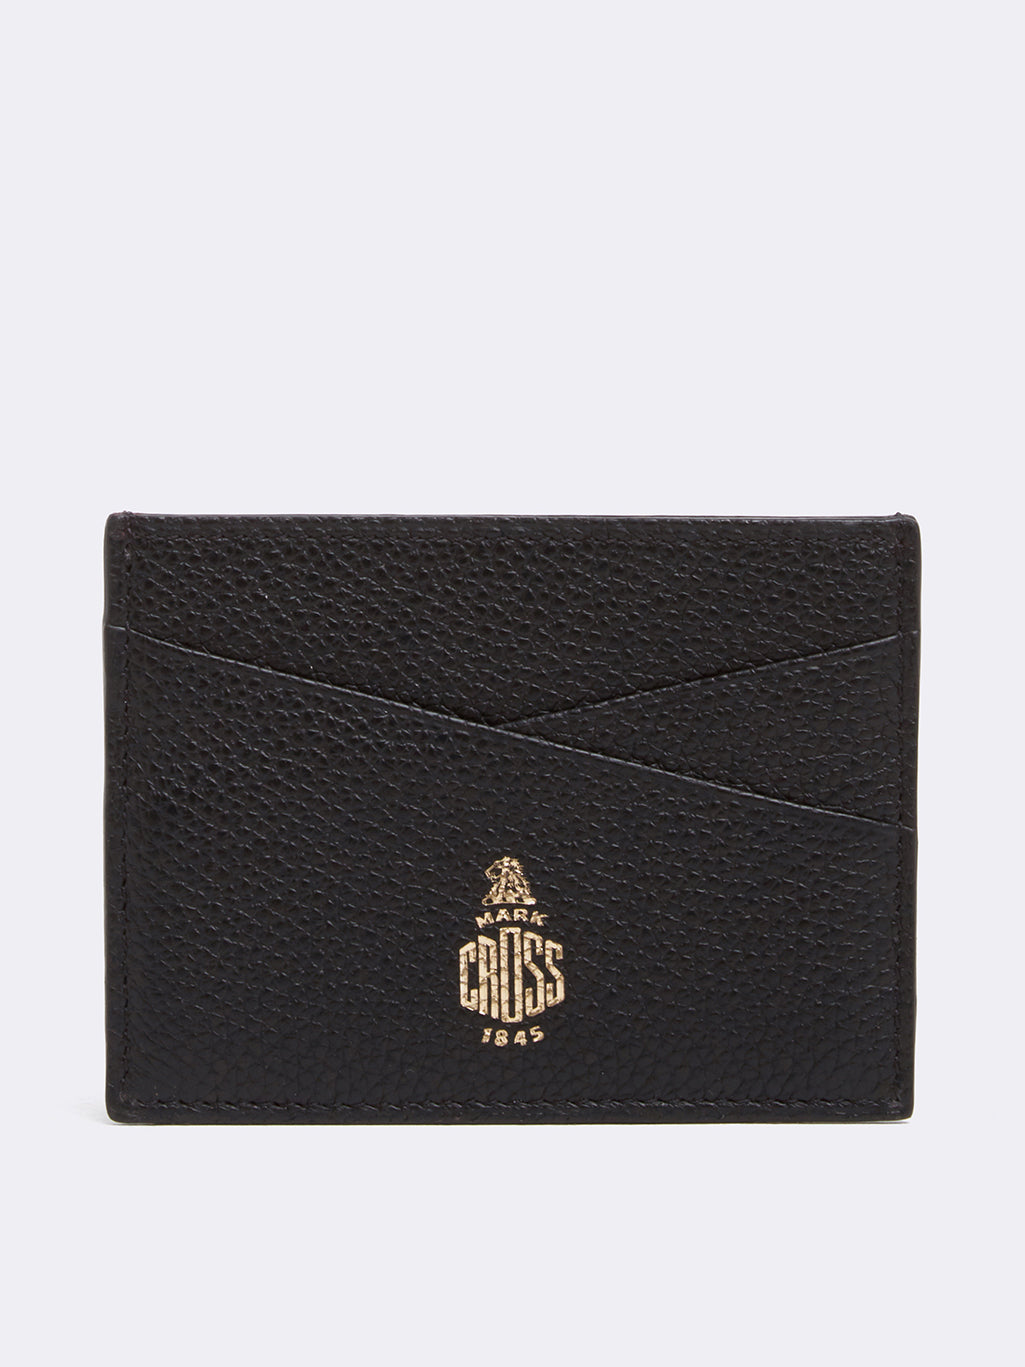 Mark Cross Leather Card Case Tumbled Grain Black Front